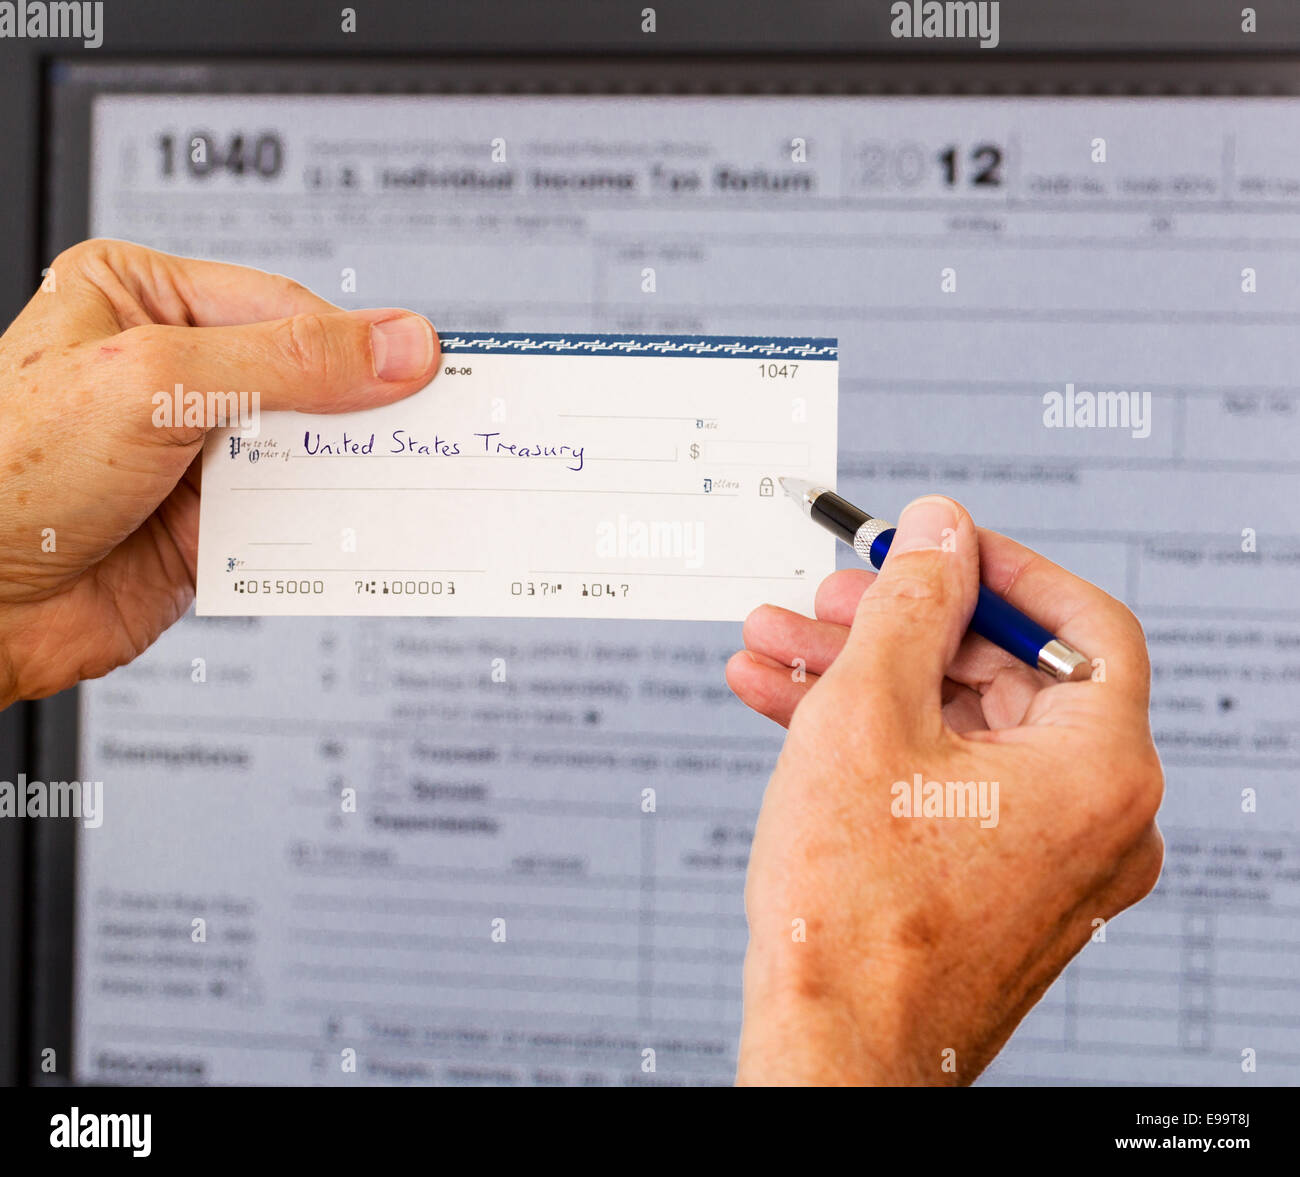 Usa tax form 1040 for year 2012 and check stock photo 74590002 alamy usa tax form 1040 for year 2012 and check falaconquin